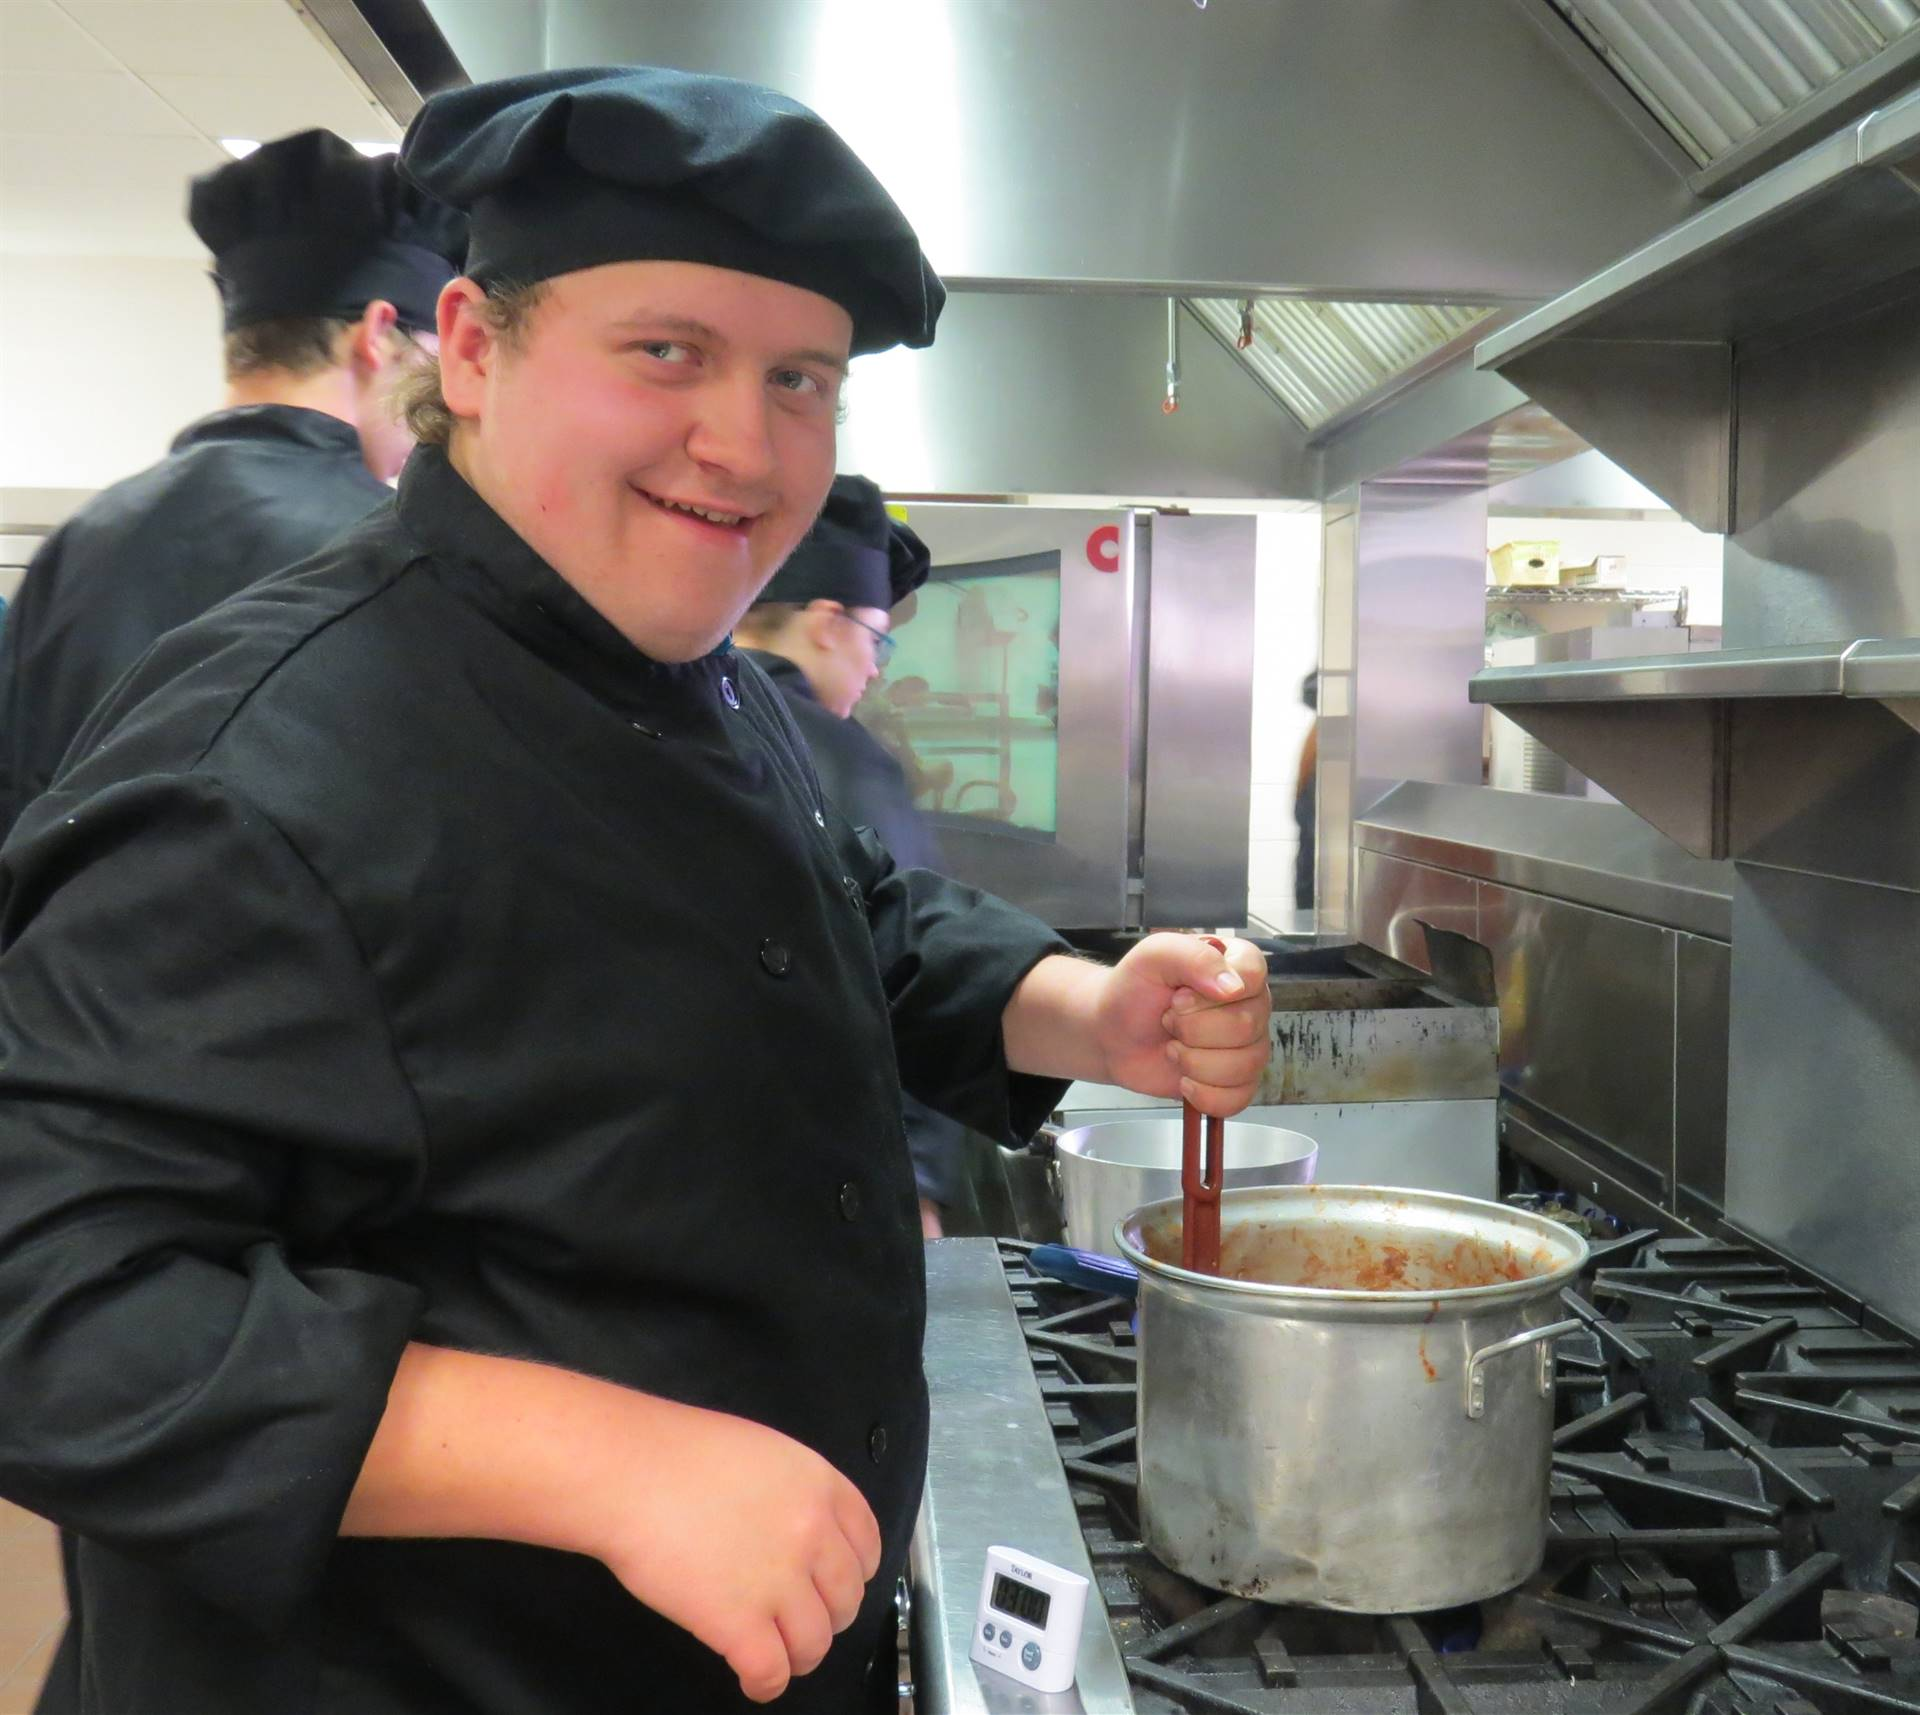 Male Culinary Arts student in black chef coat and hot stirring a pot on the gas stove